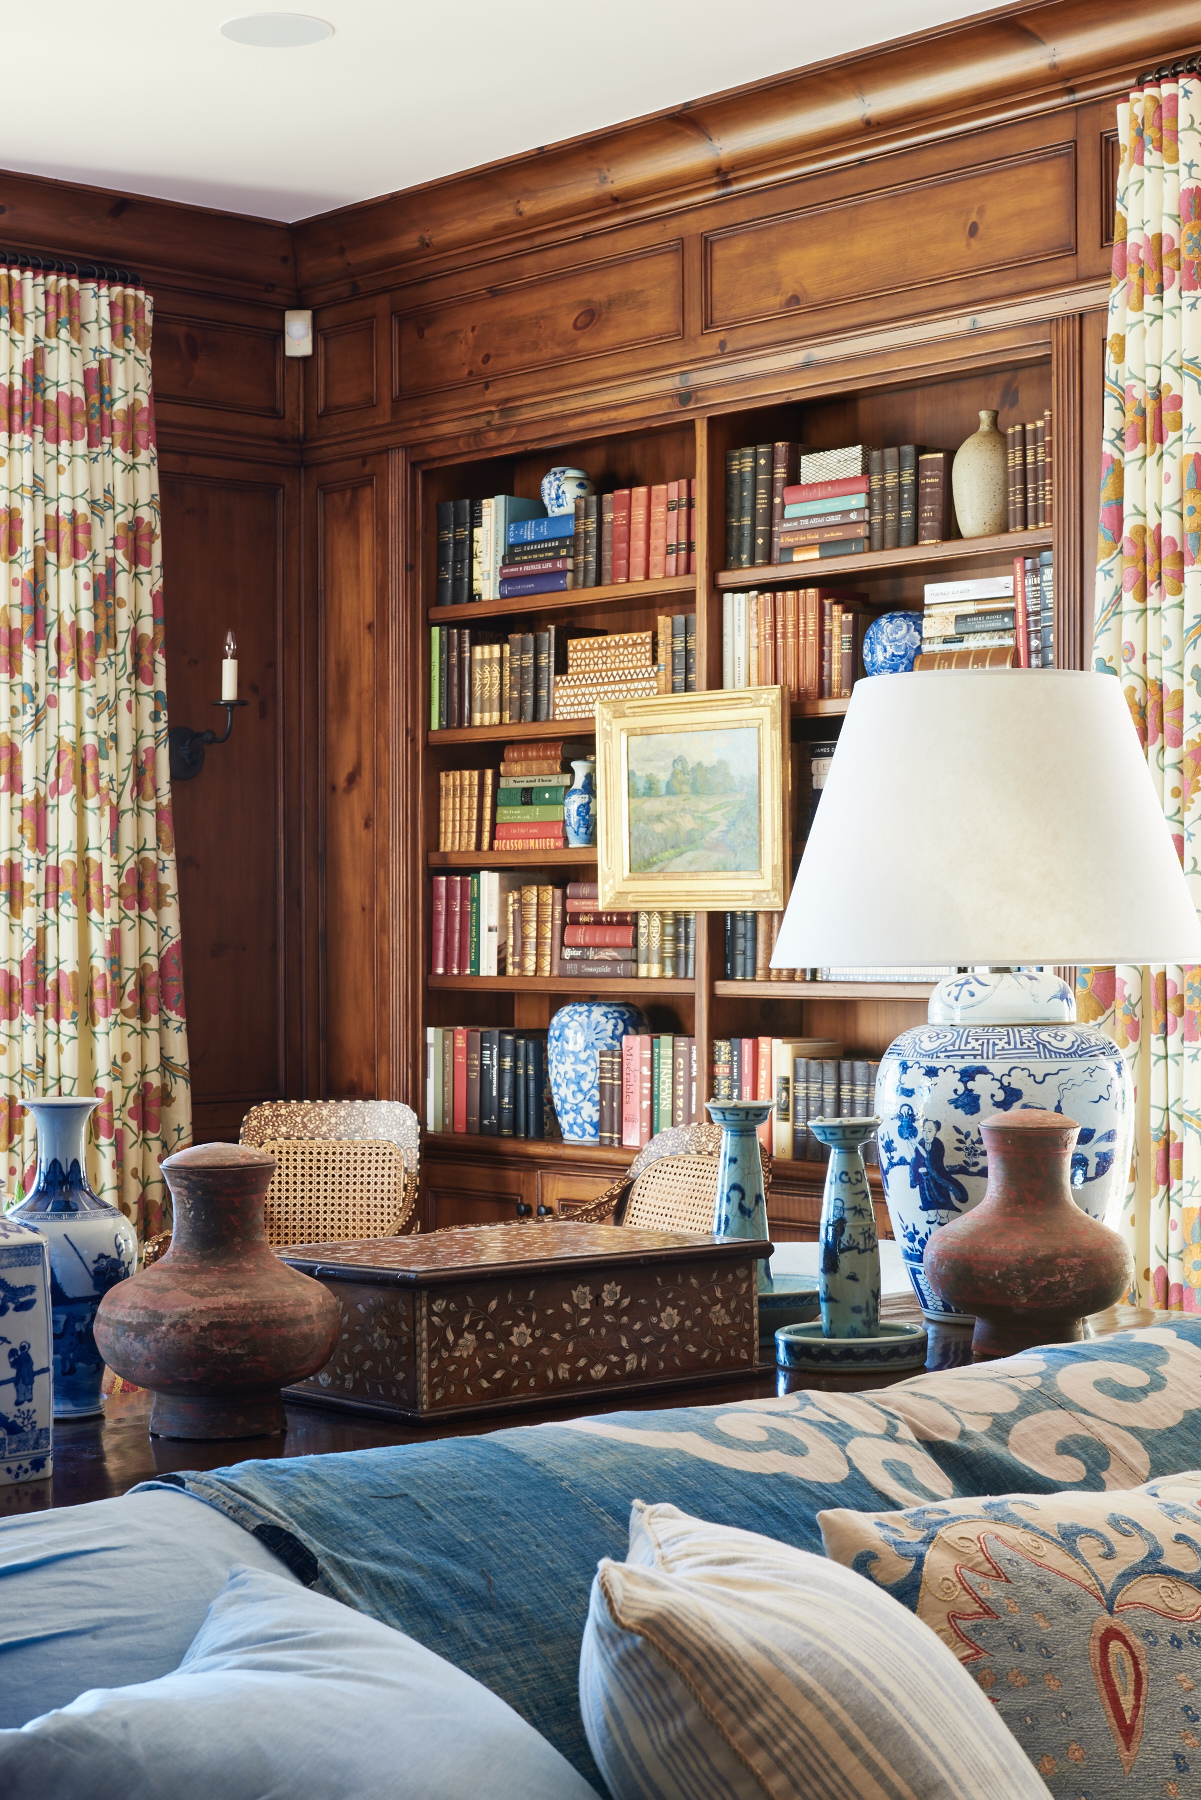 Patterned drapery in library